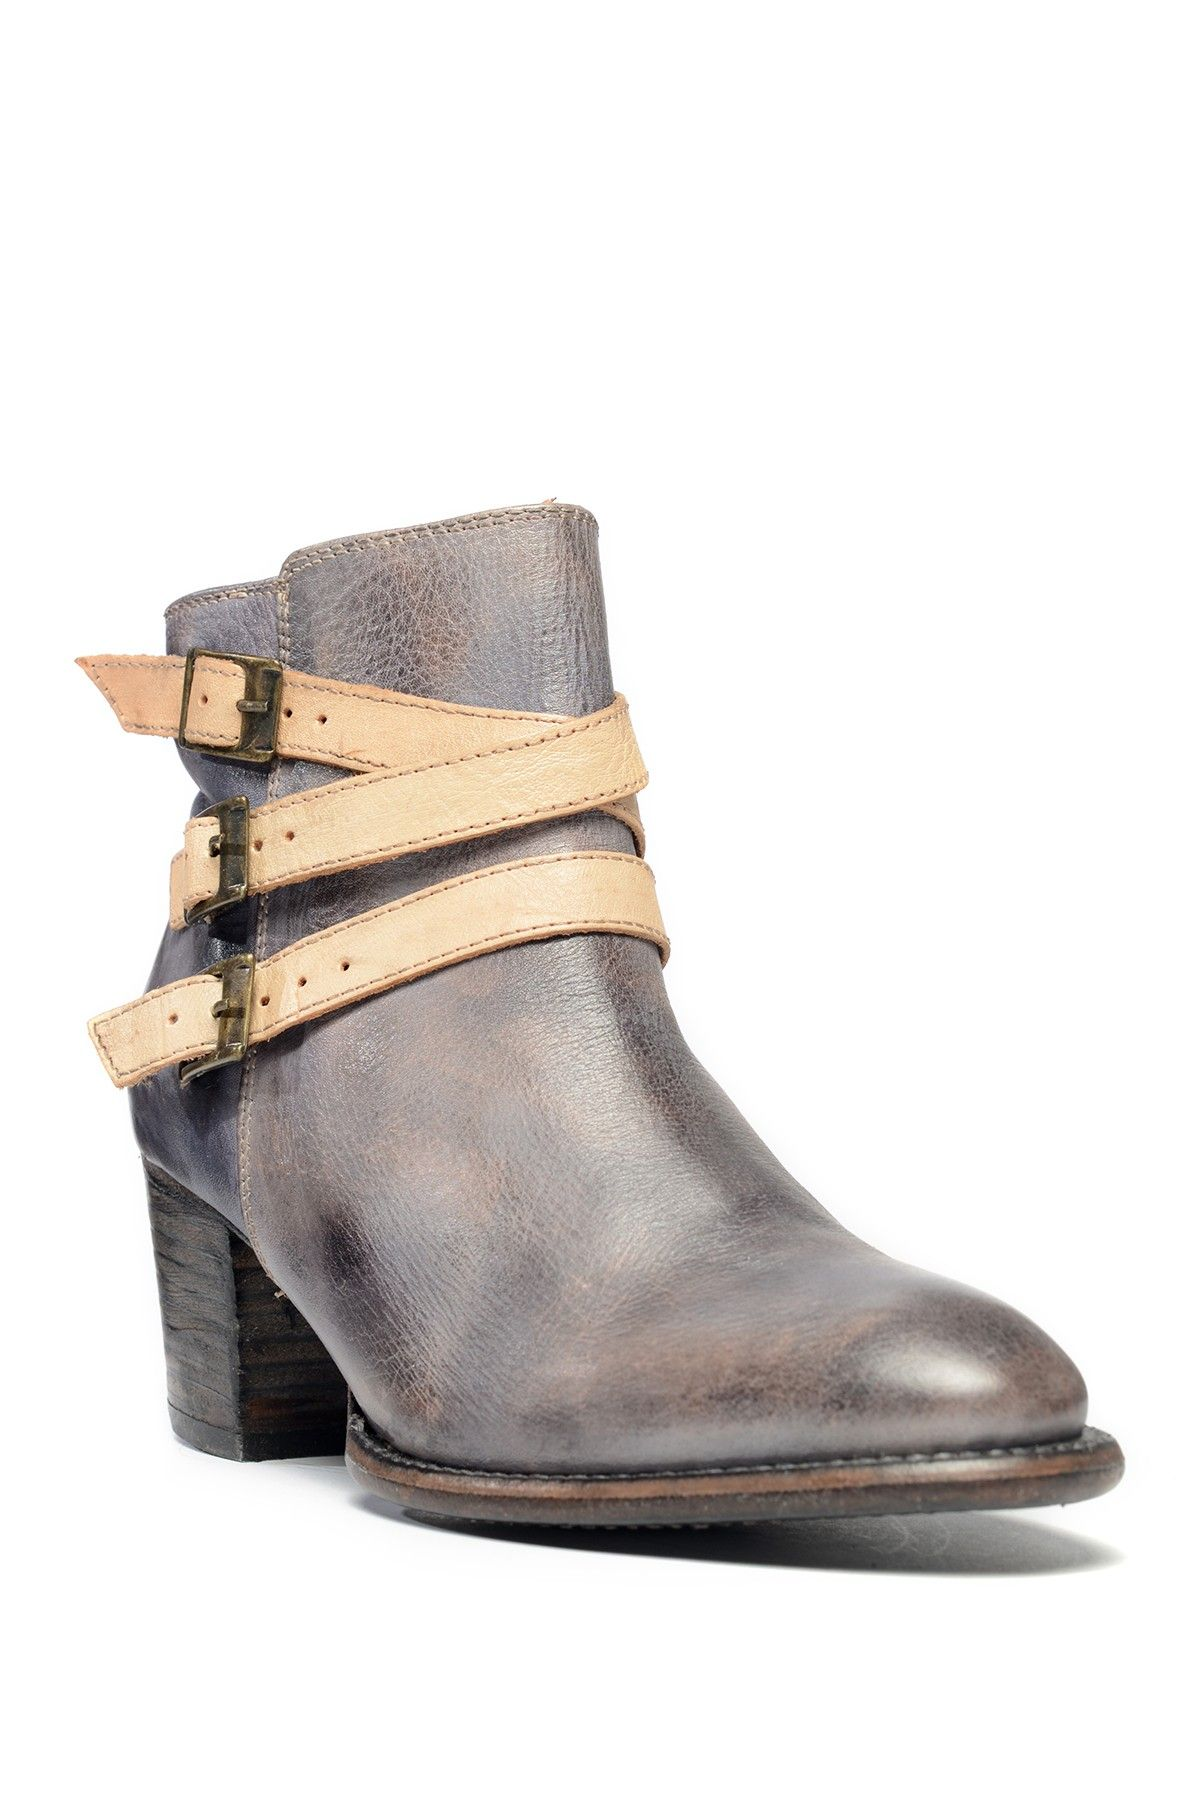 faa057ced30 Ankle Buckle Bootie